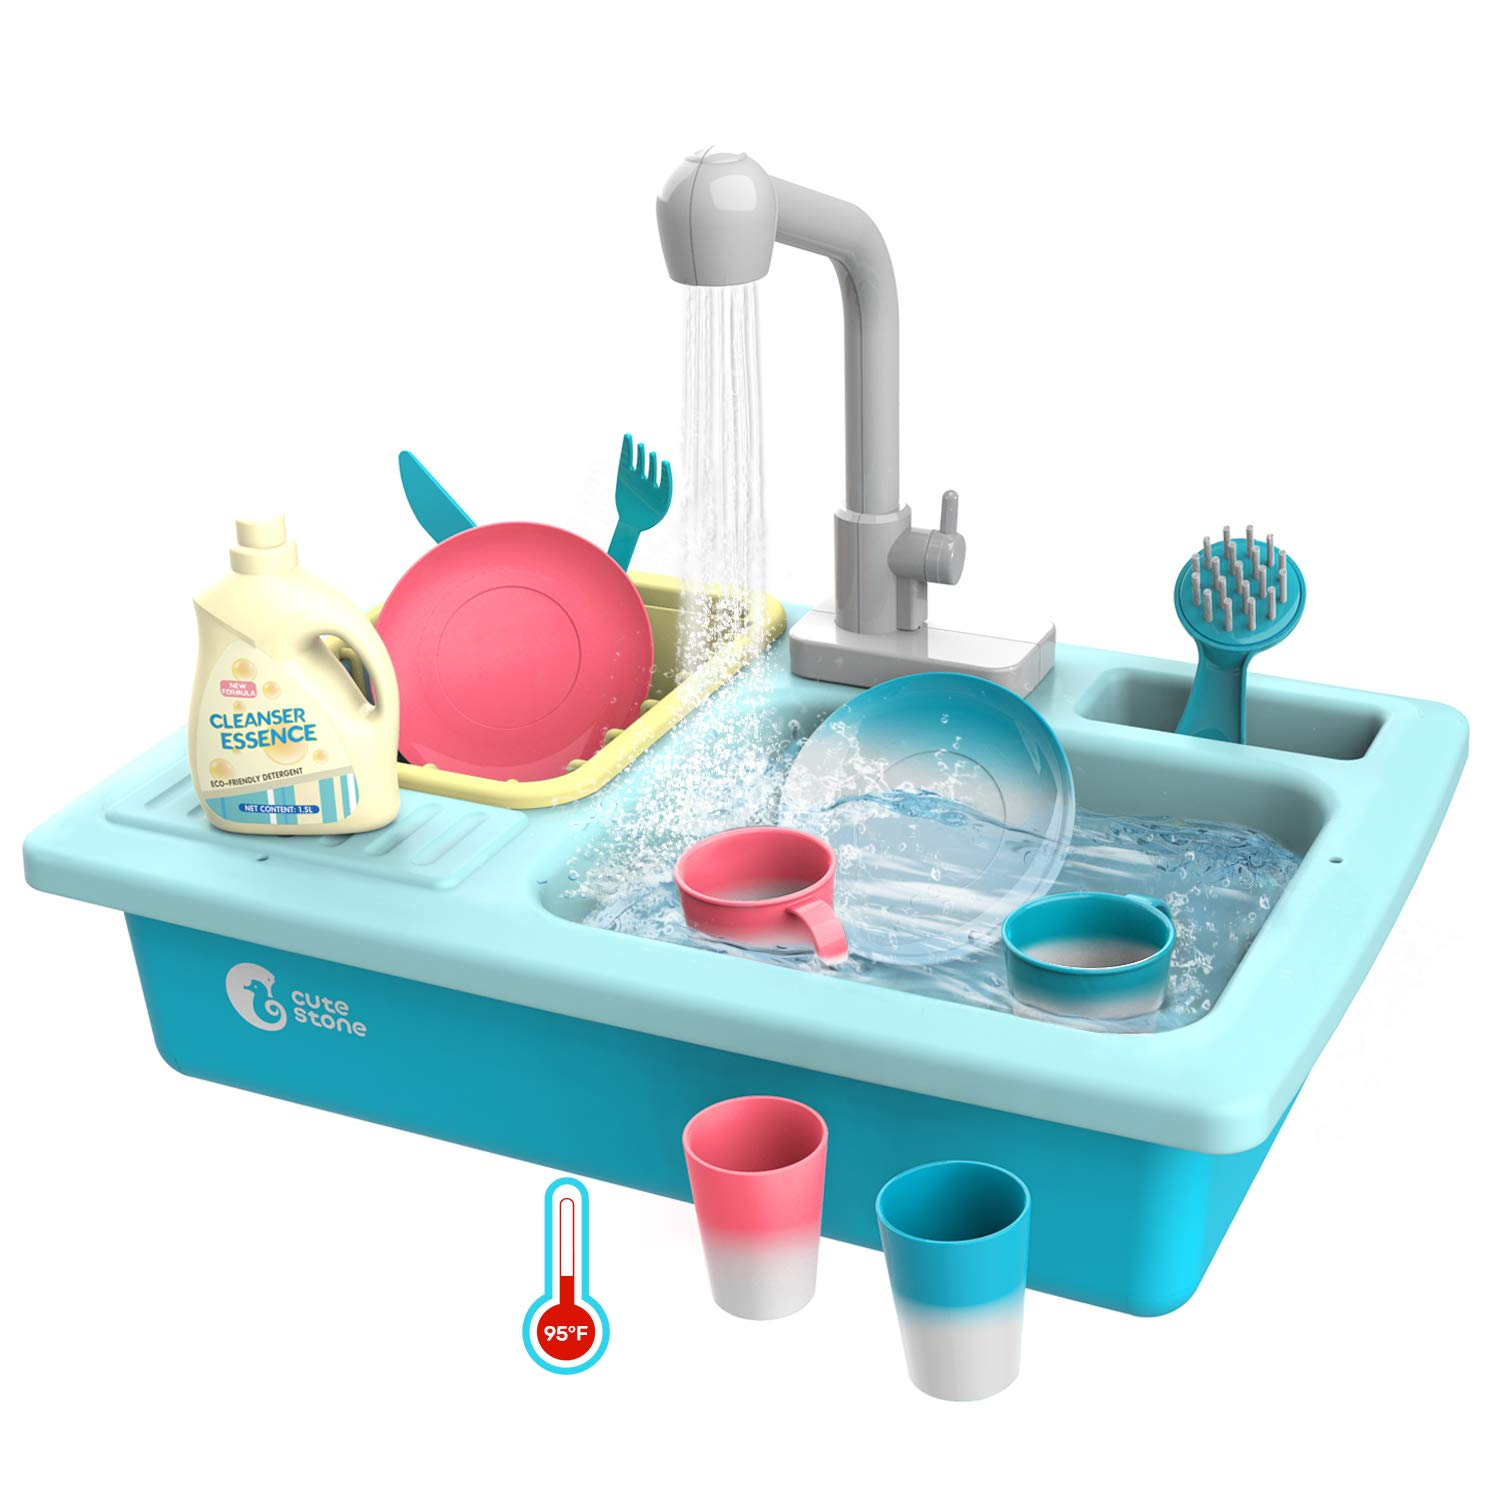 CUTE STONE Color Changing Kitchen Sink Toys, Children Heat Sensitive  Electric Dishwasher Playing Toy with Running Water, Automatic Water Cycle  System ...